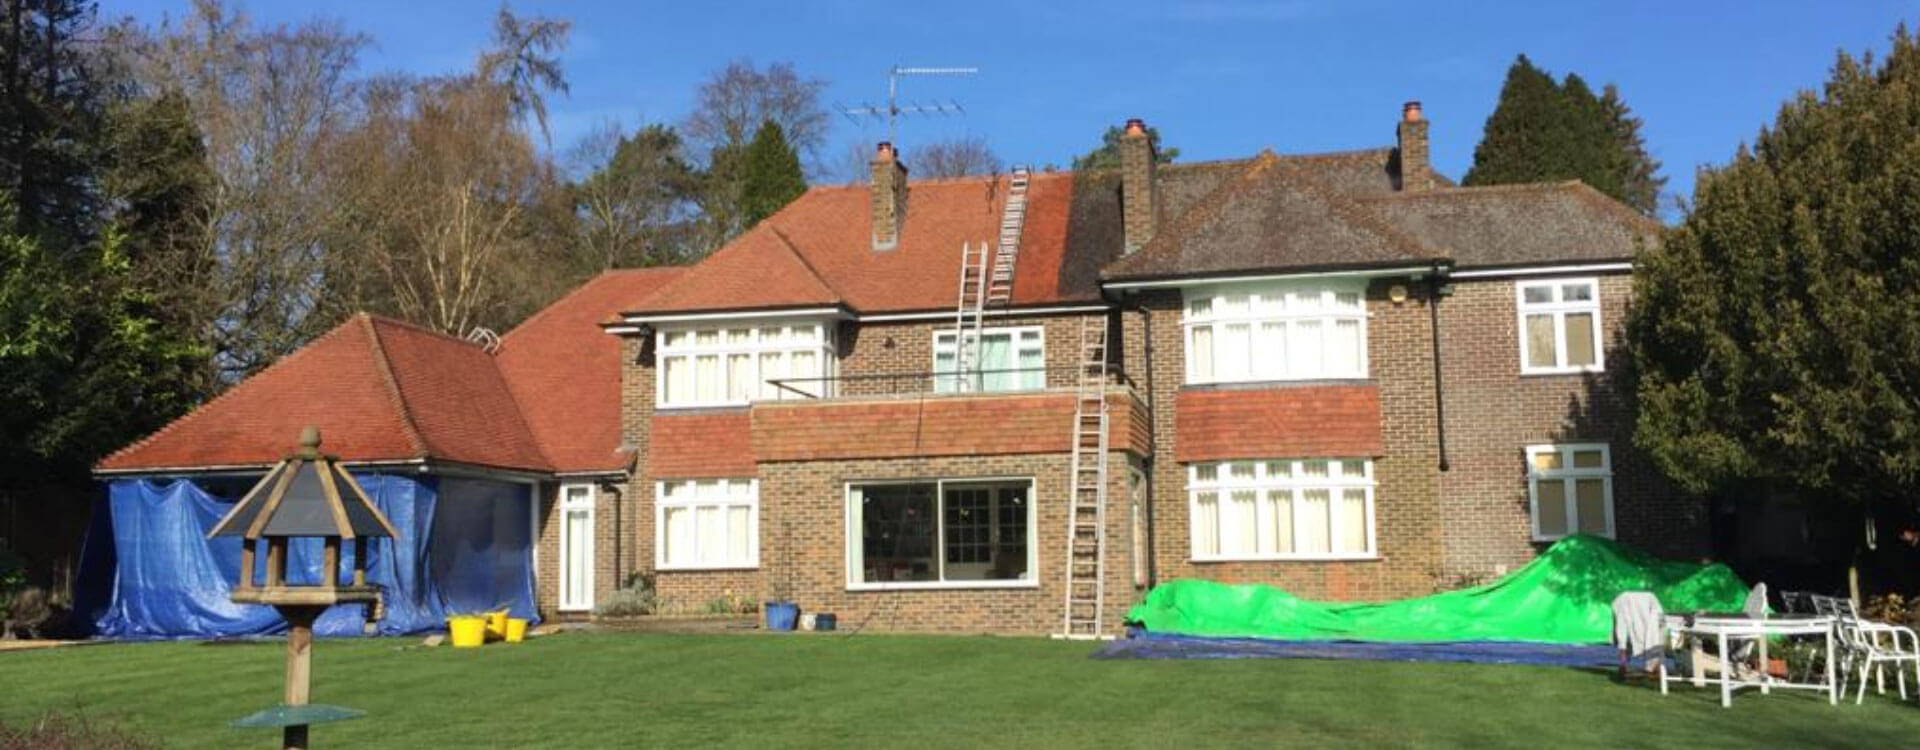 Roof Cleaning Service Covering Esher, Cobham, Guildford & Surrounding Surrey Areas